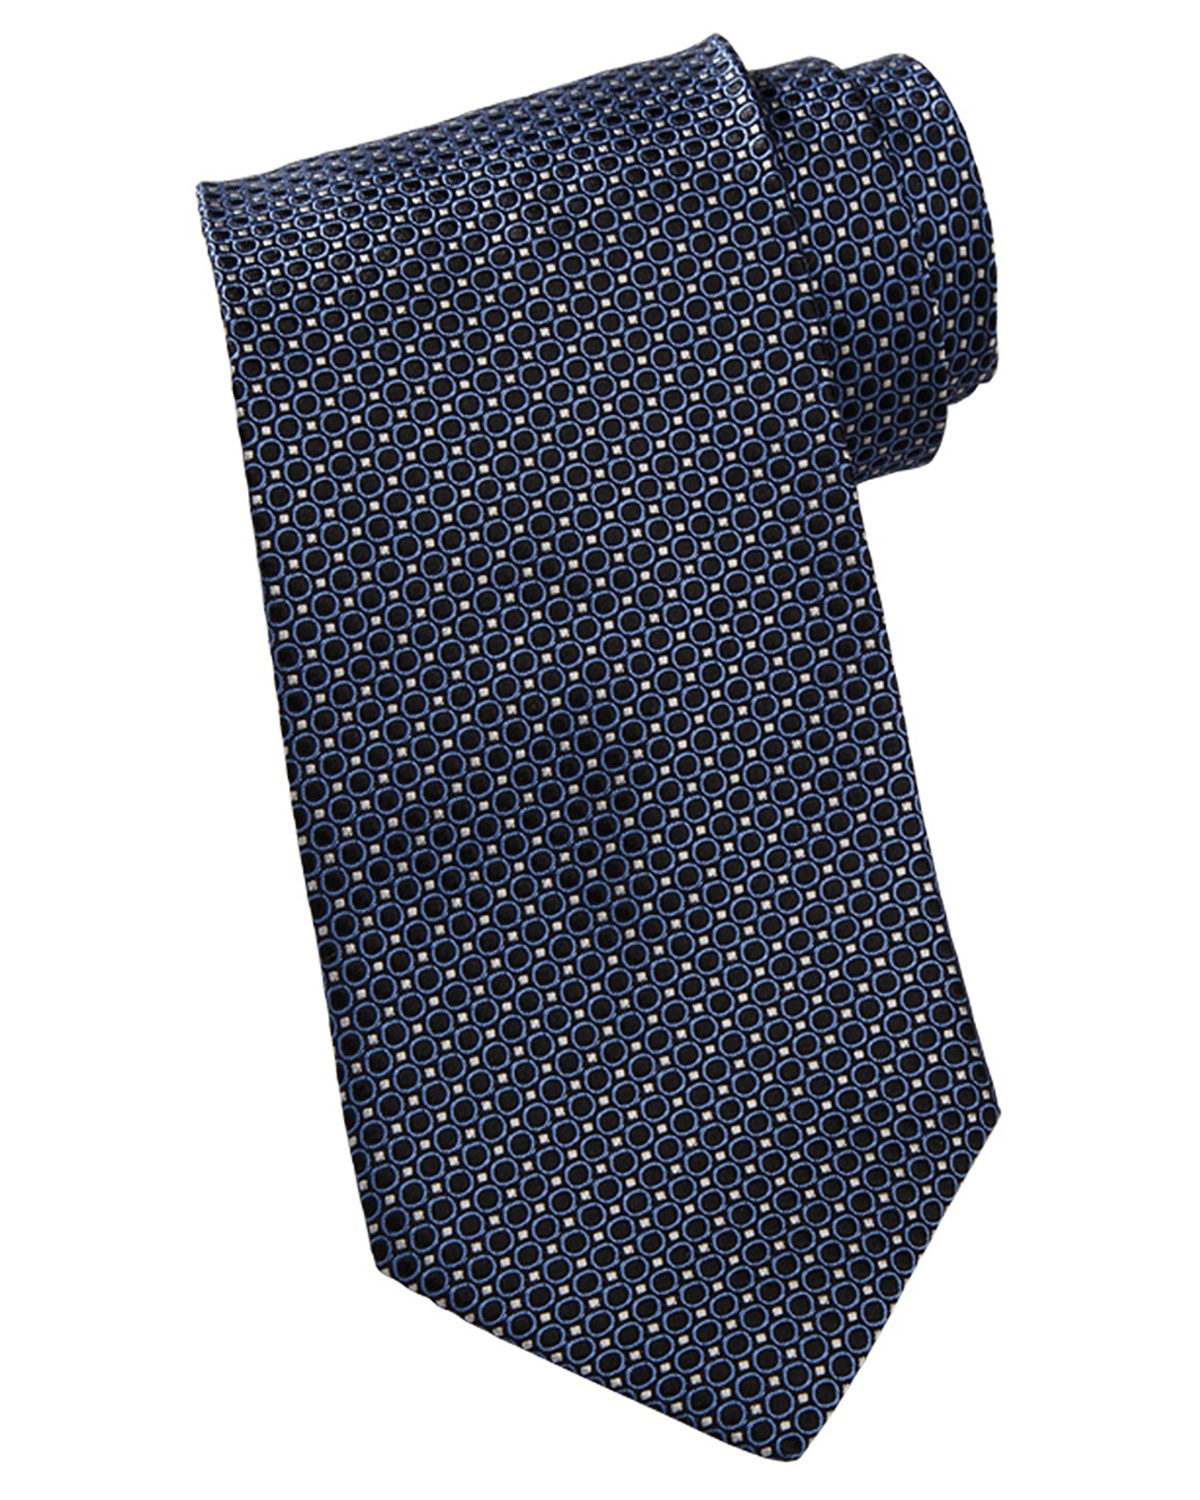 'Edwards CD00 Circles And Dots Tie'